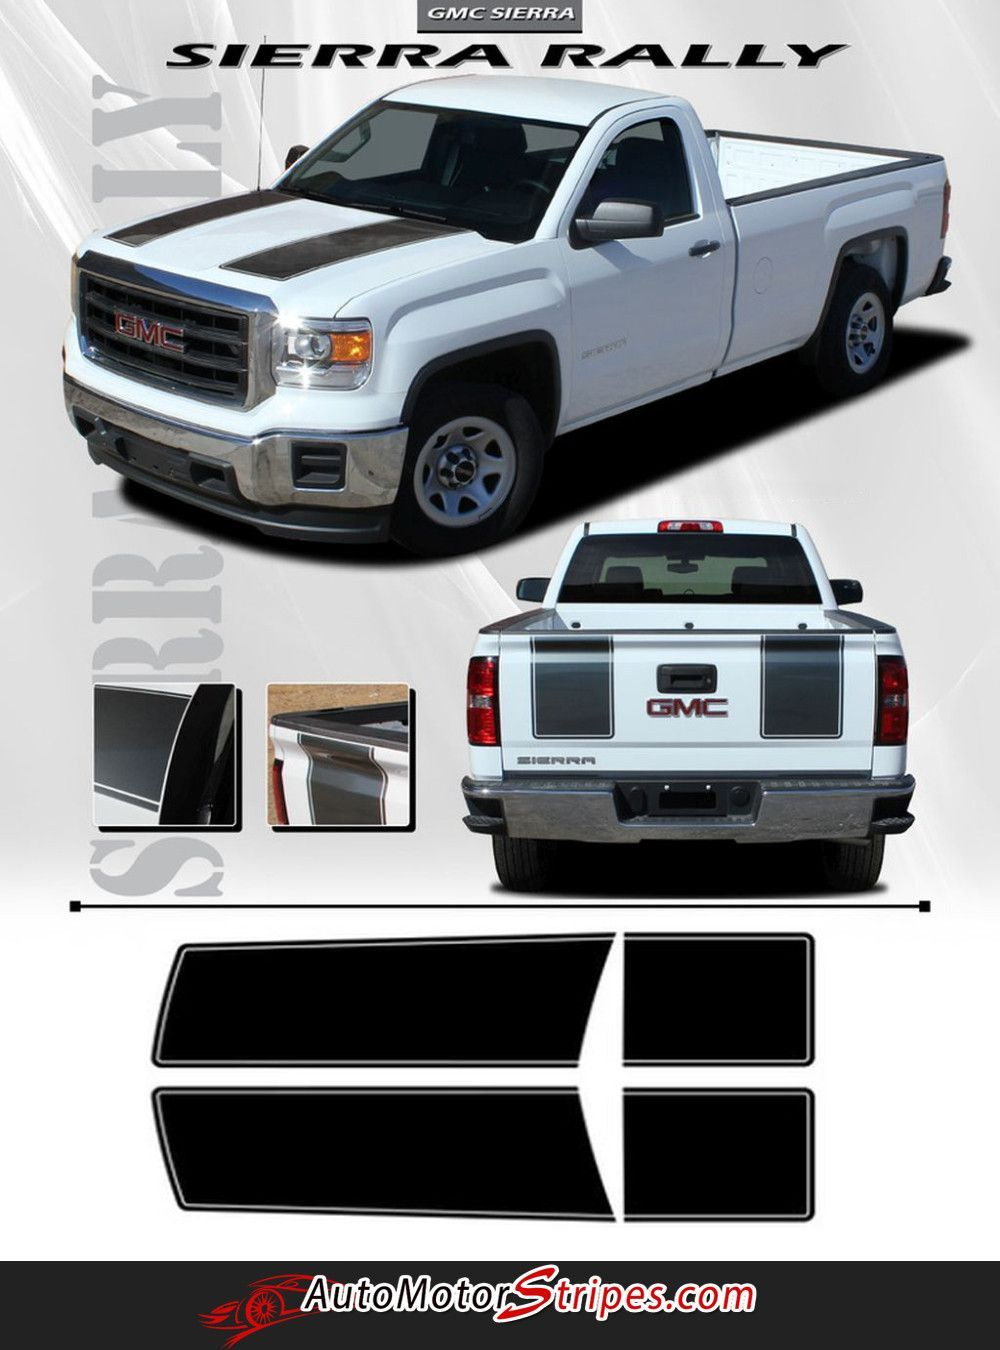 2014 2016 gmc sierra rally oe factory style edition truck hood tailgate racing vinyl graphics stripes kit [ 1000 x 1350 Pixel ]